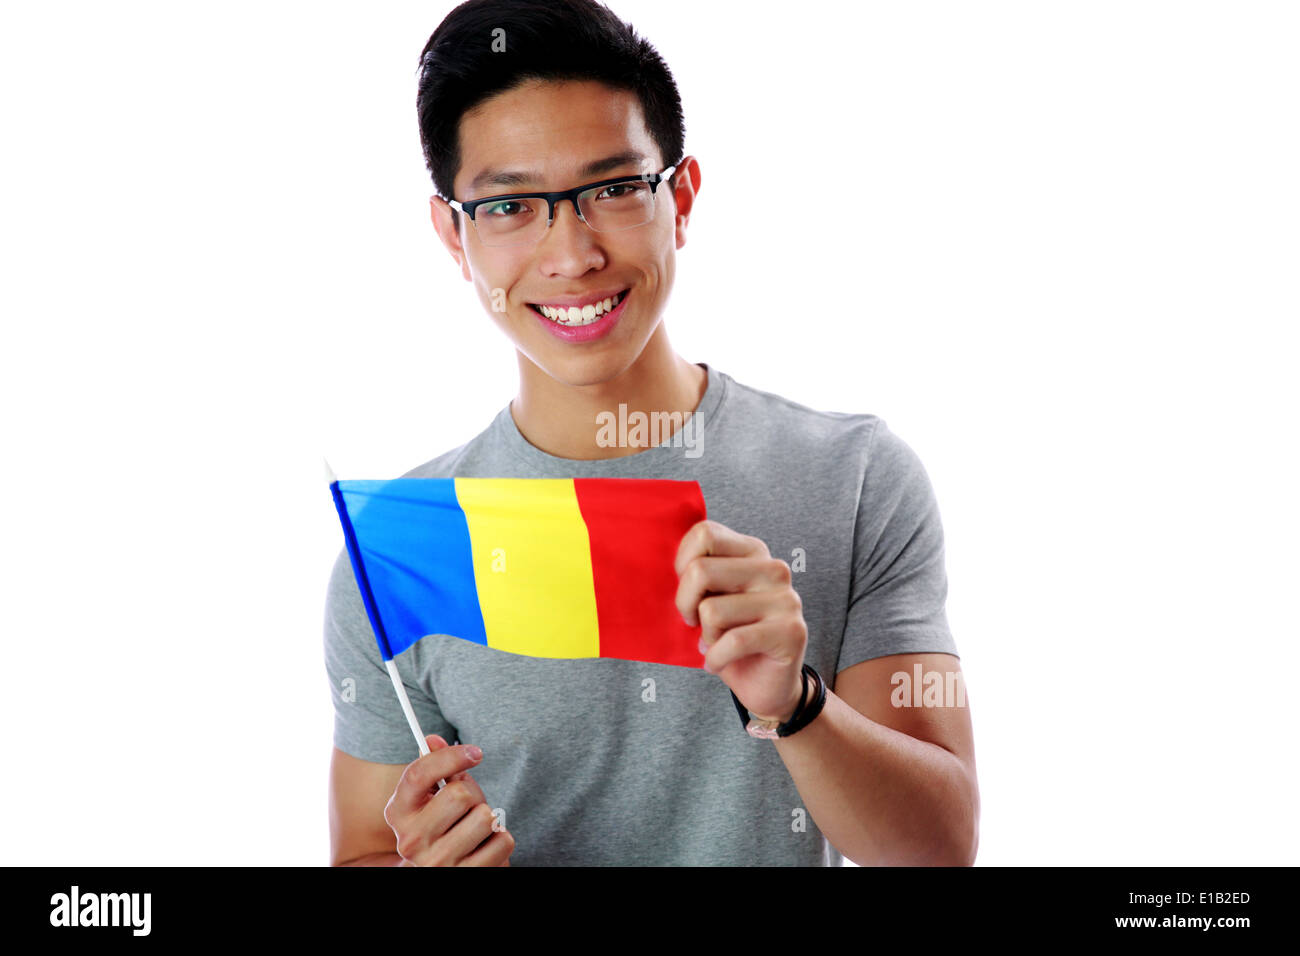 Happy young asian man holding flag of Romania isolated on white background - Stock Image